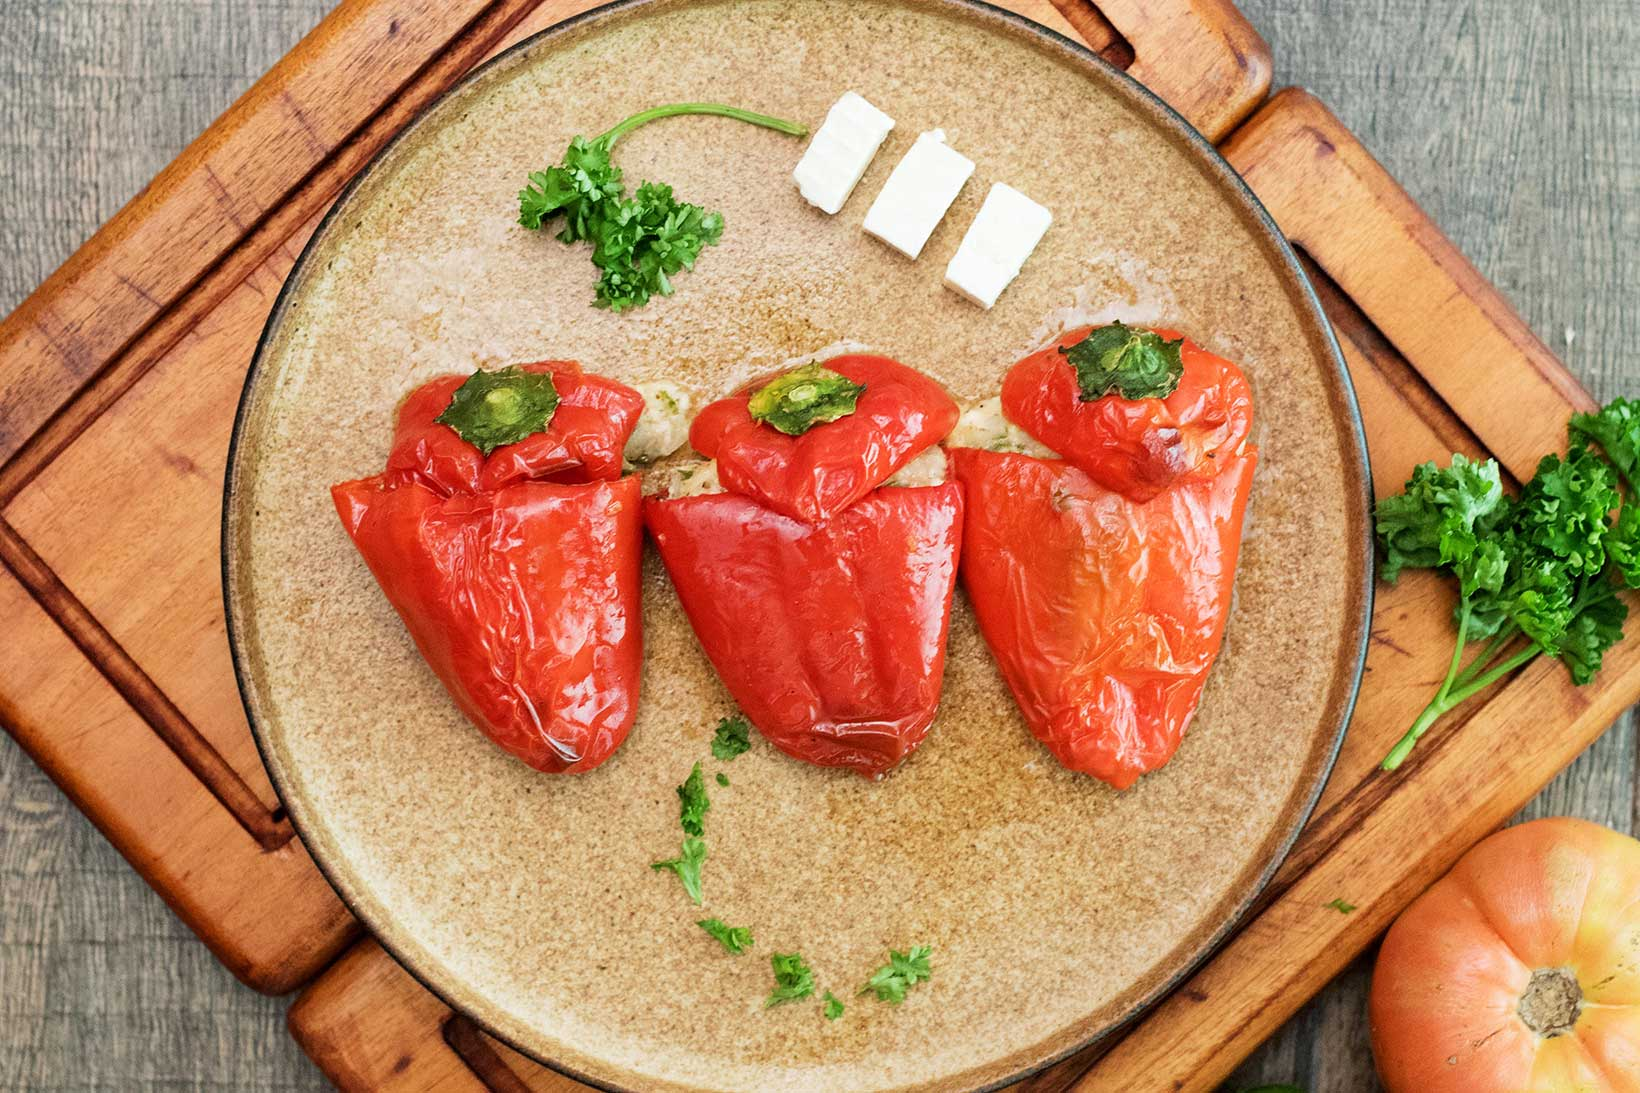 Slow cooked peppers stuffed with herb infused feta cheese.